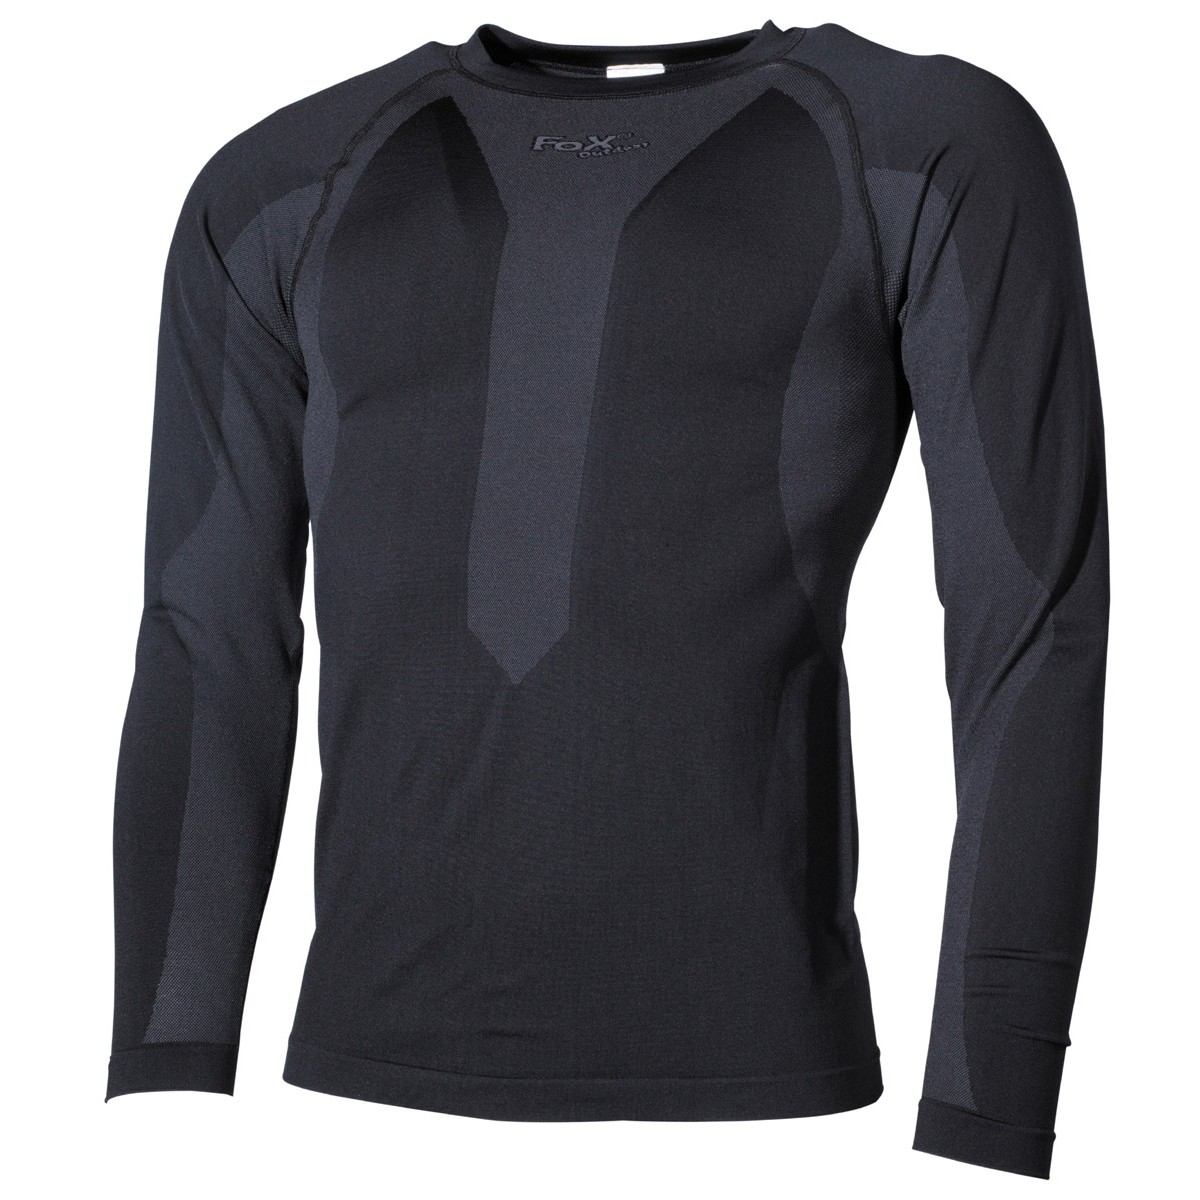 Functional Outdoor Thermo Long Sleeve Undershirt - Black